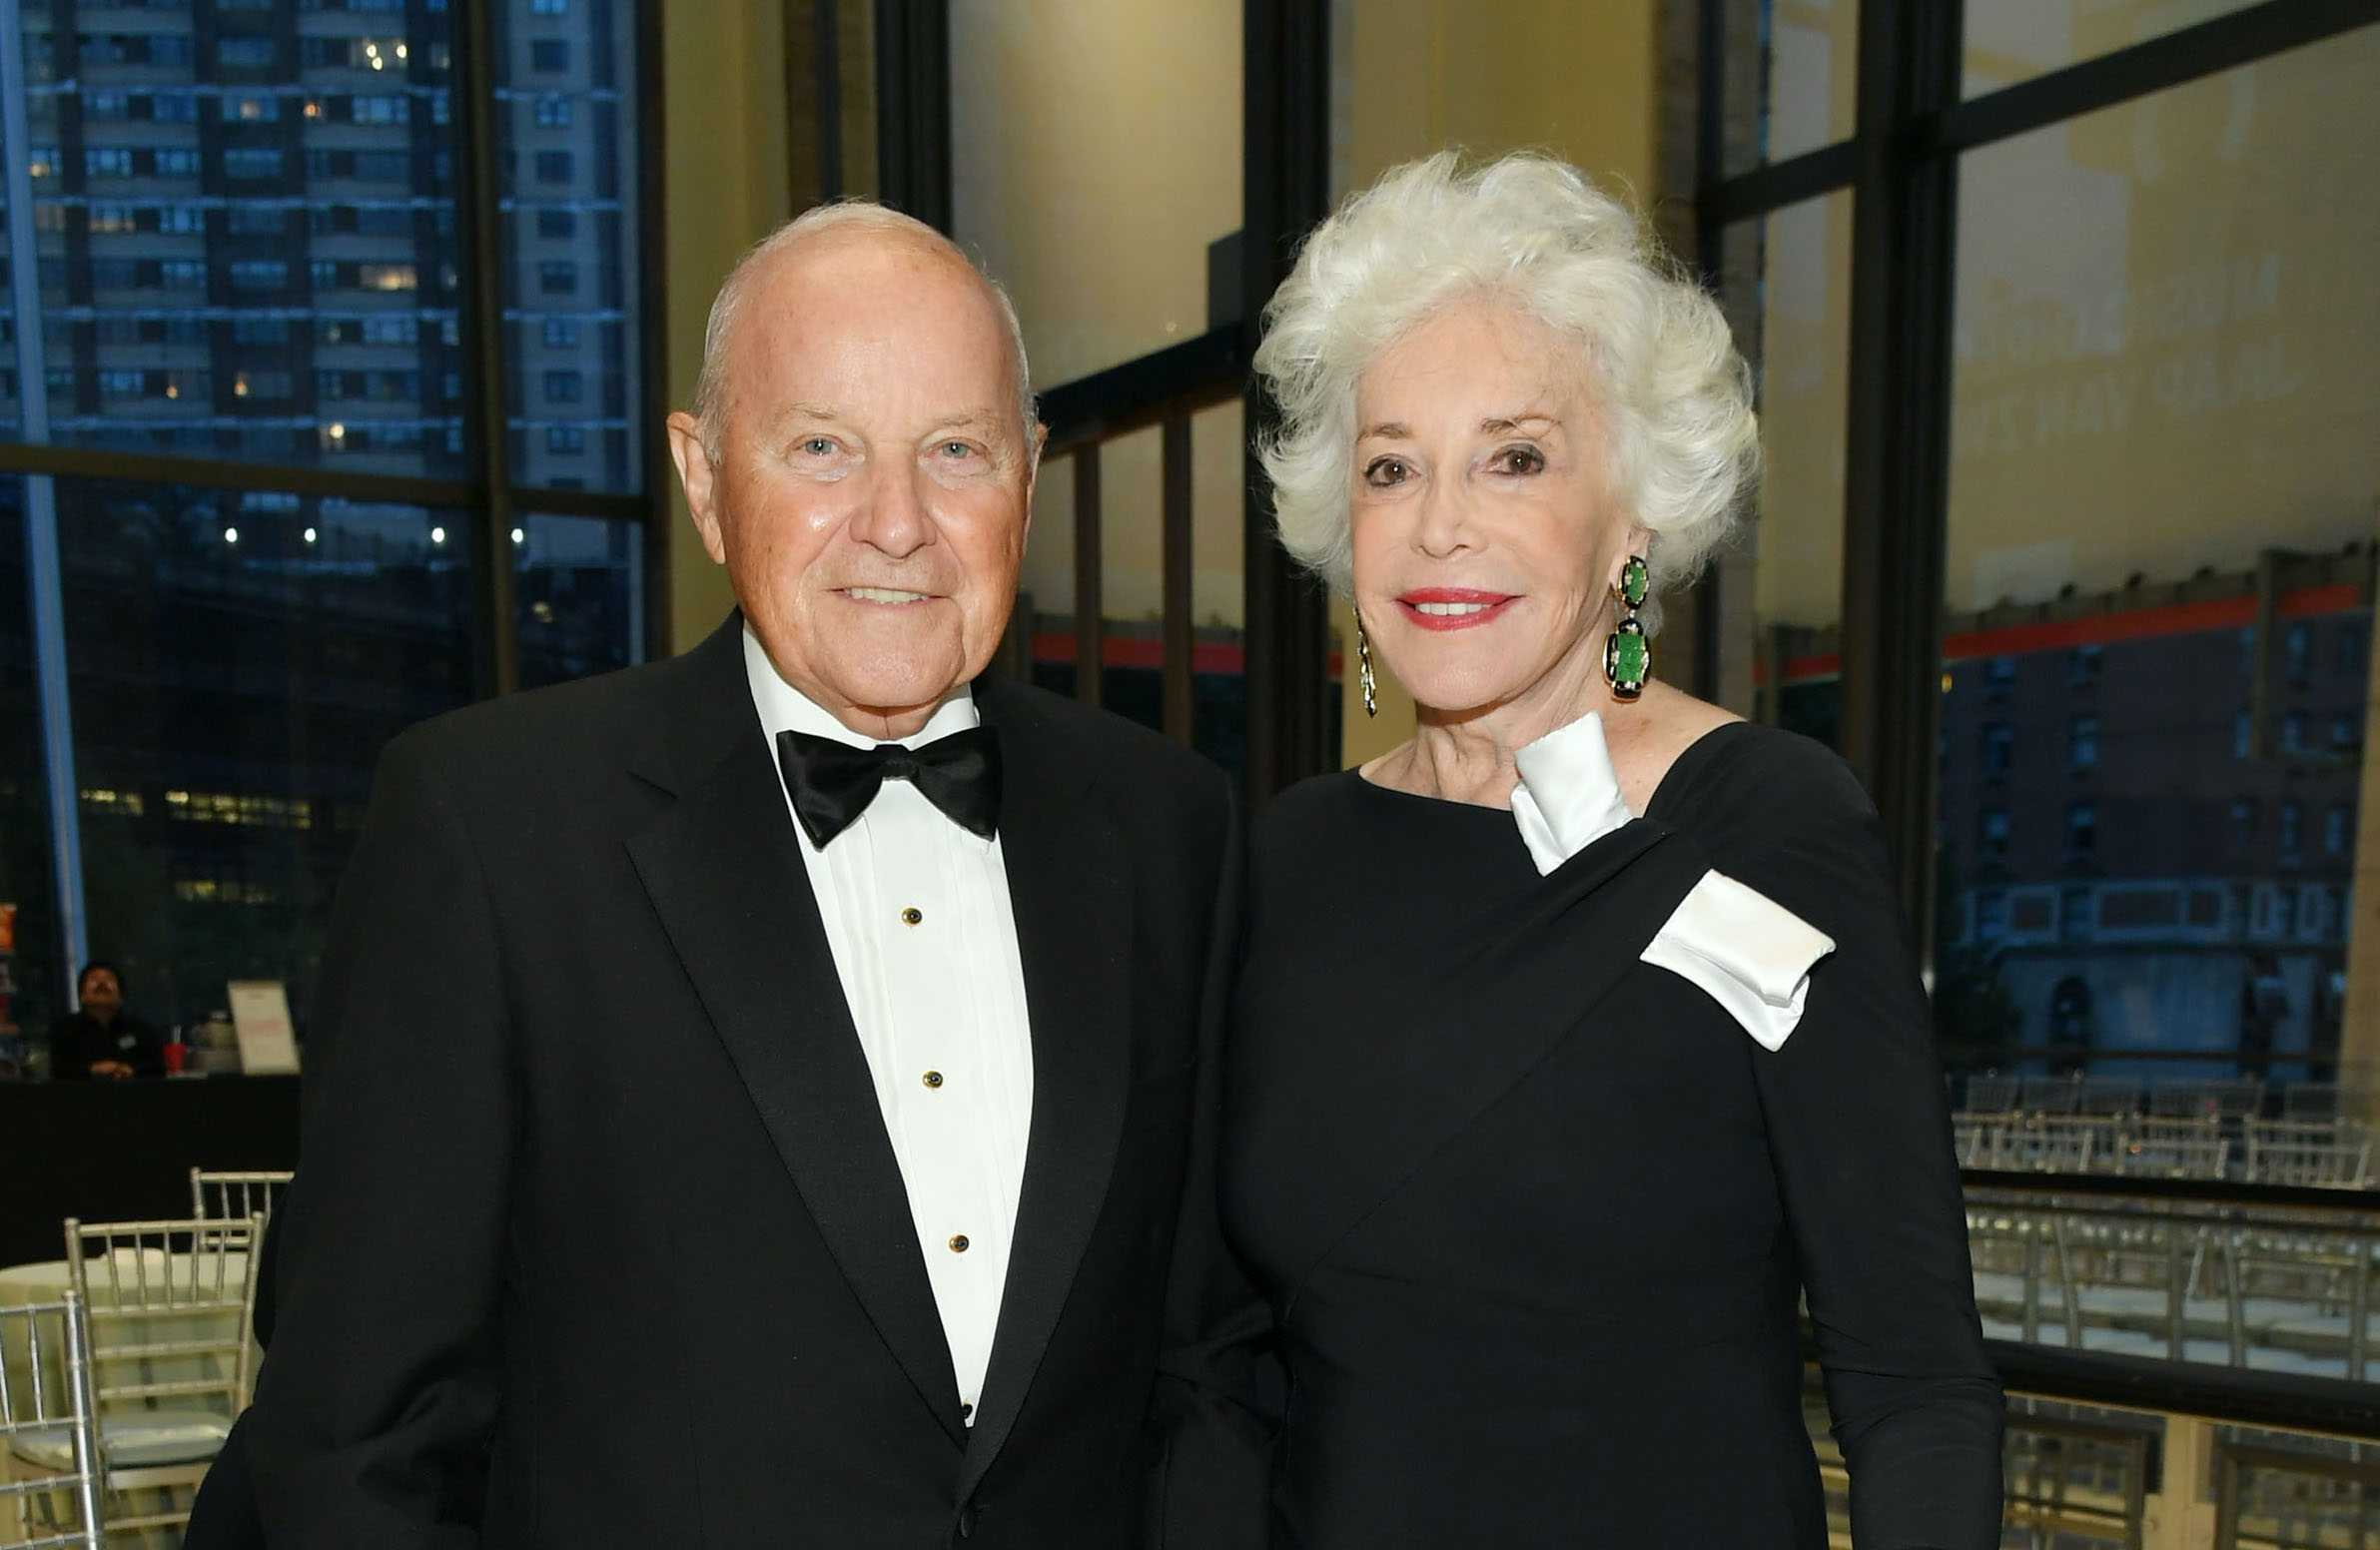 Charles and Ann Johnson at a charity benefit that's not for like Laura Loomer.